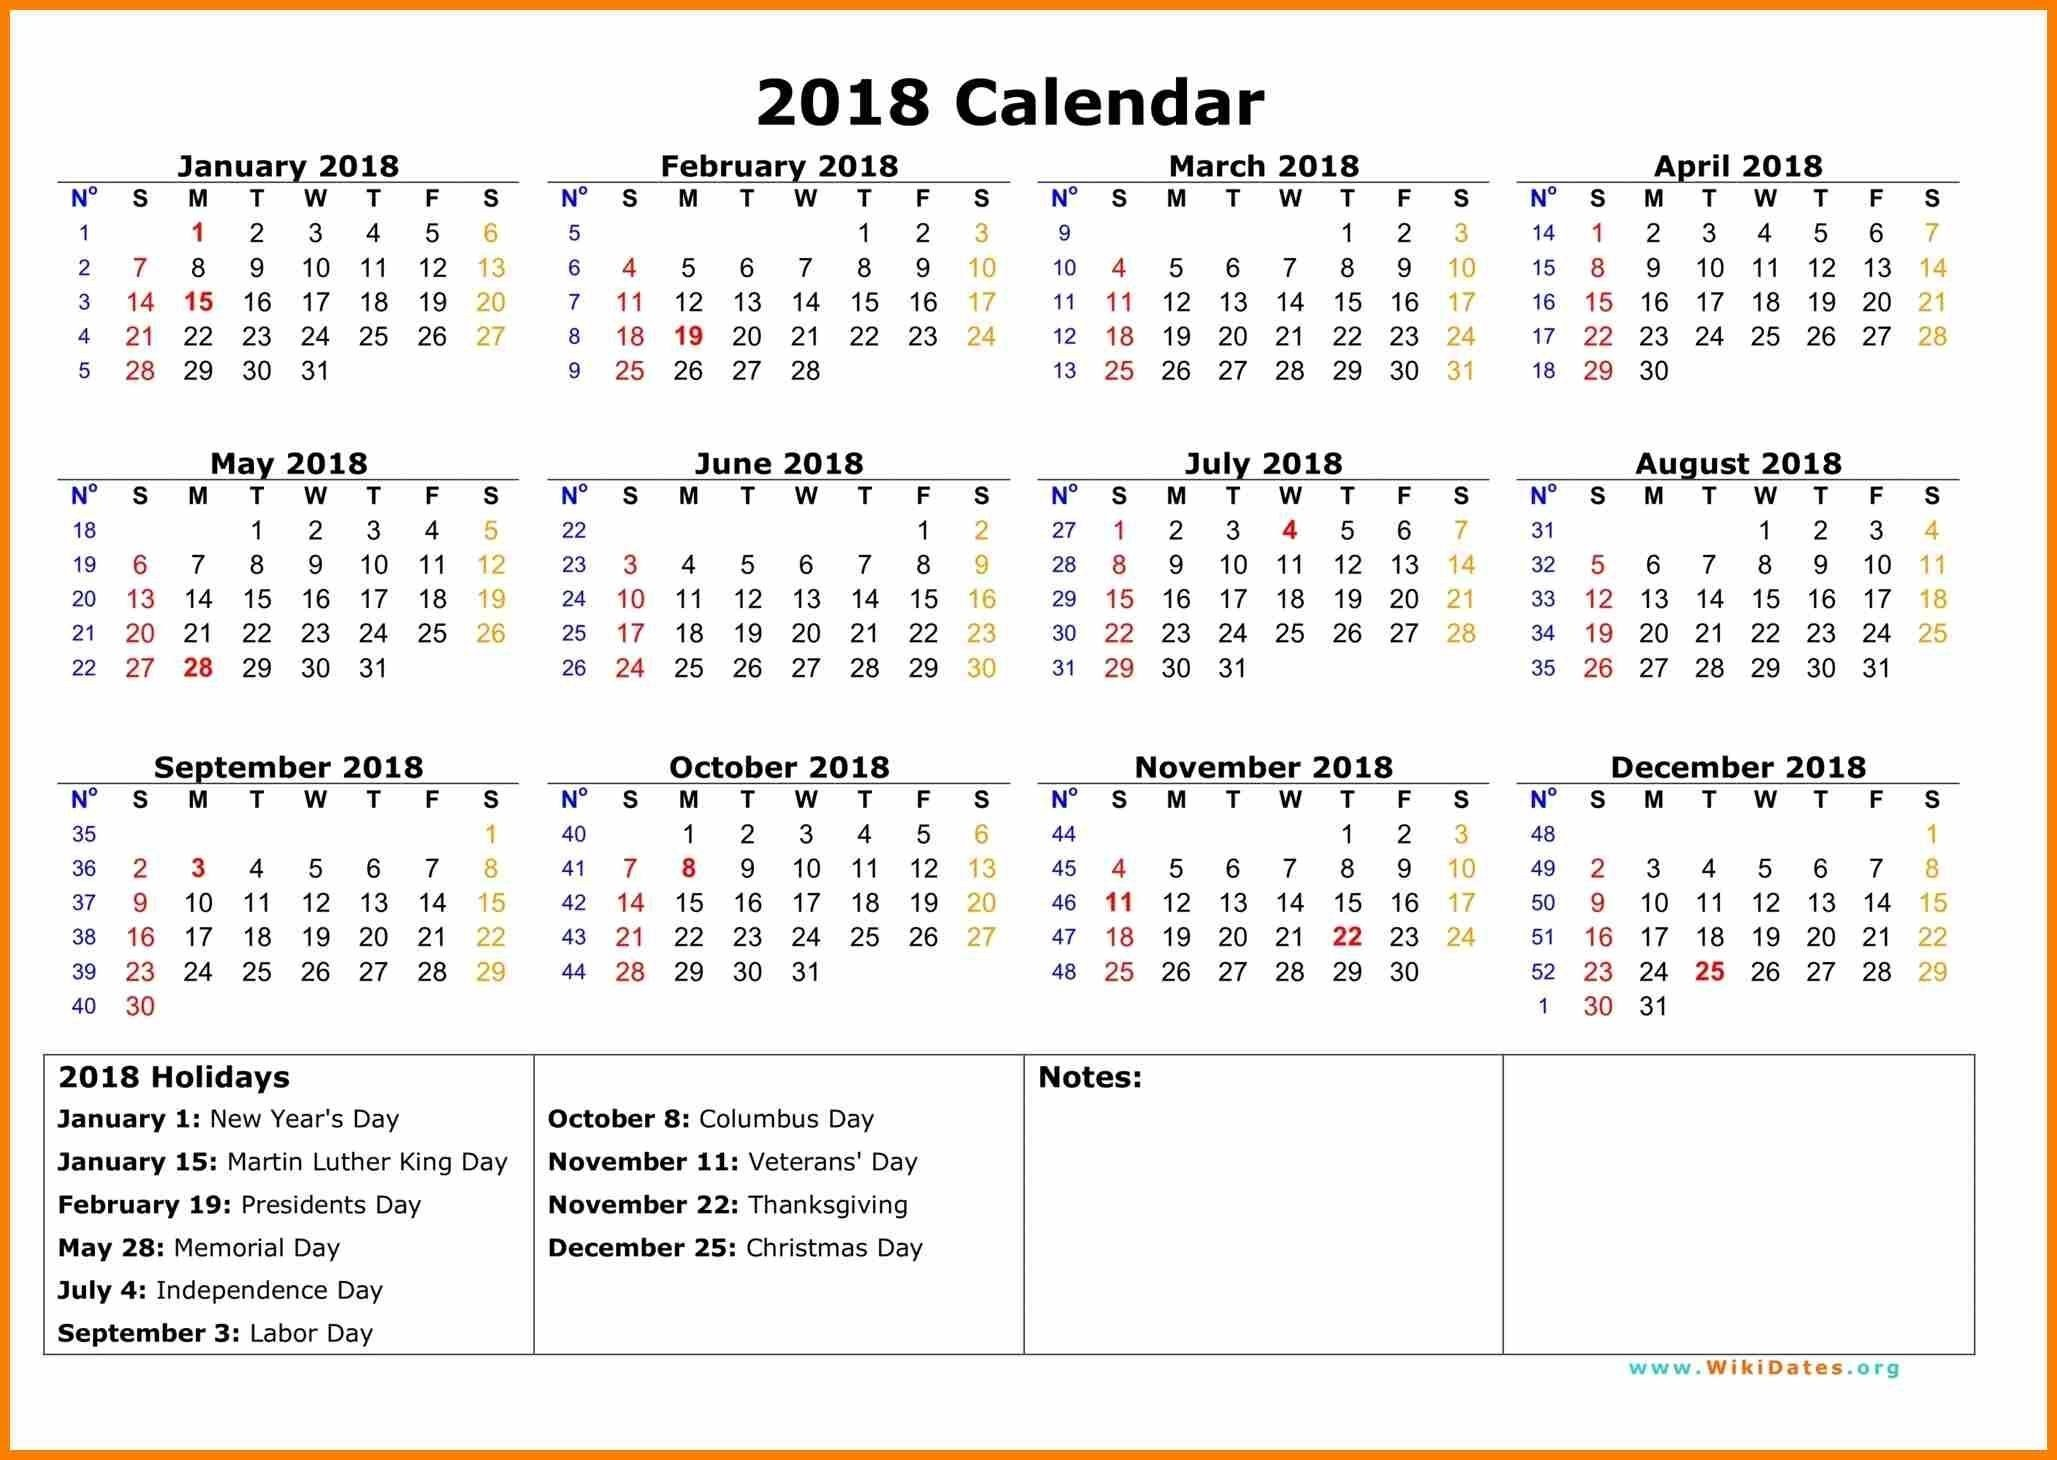 March 2018 Calendar Kalnirnay Más Populares Calendar 2017 July Gujarati Of March 2018 Calendar Kalnirnay Más Recientes Kalender Vorlage Powerpoint 2017 Great Keynote Calendar Template